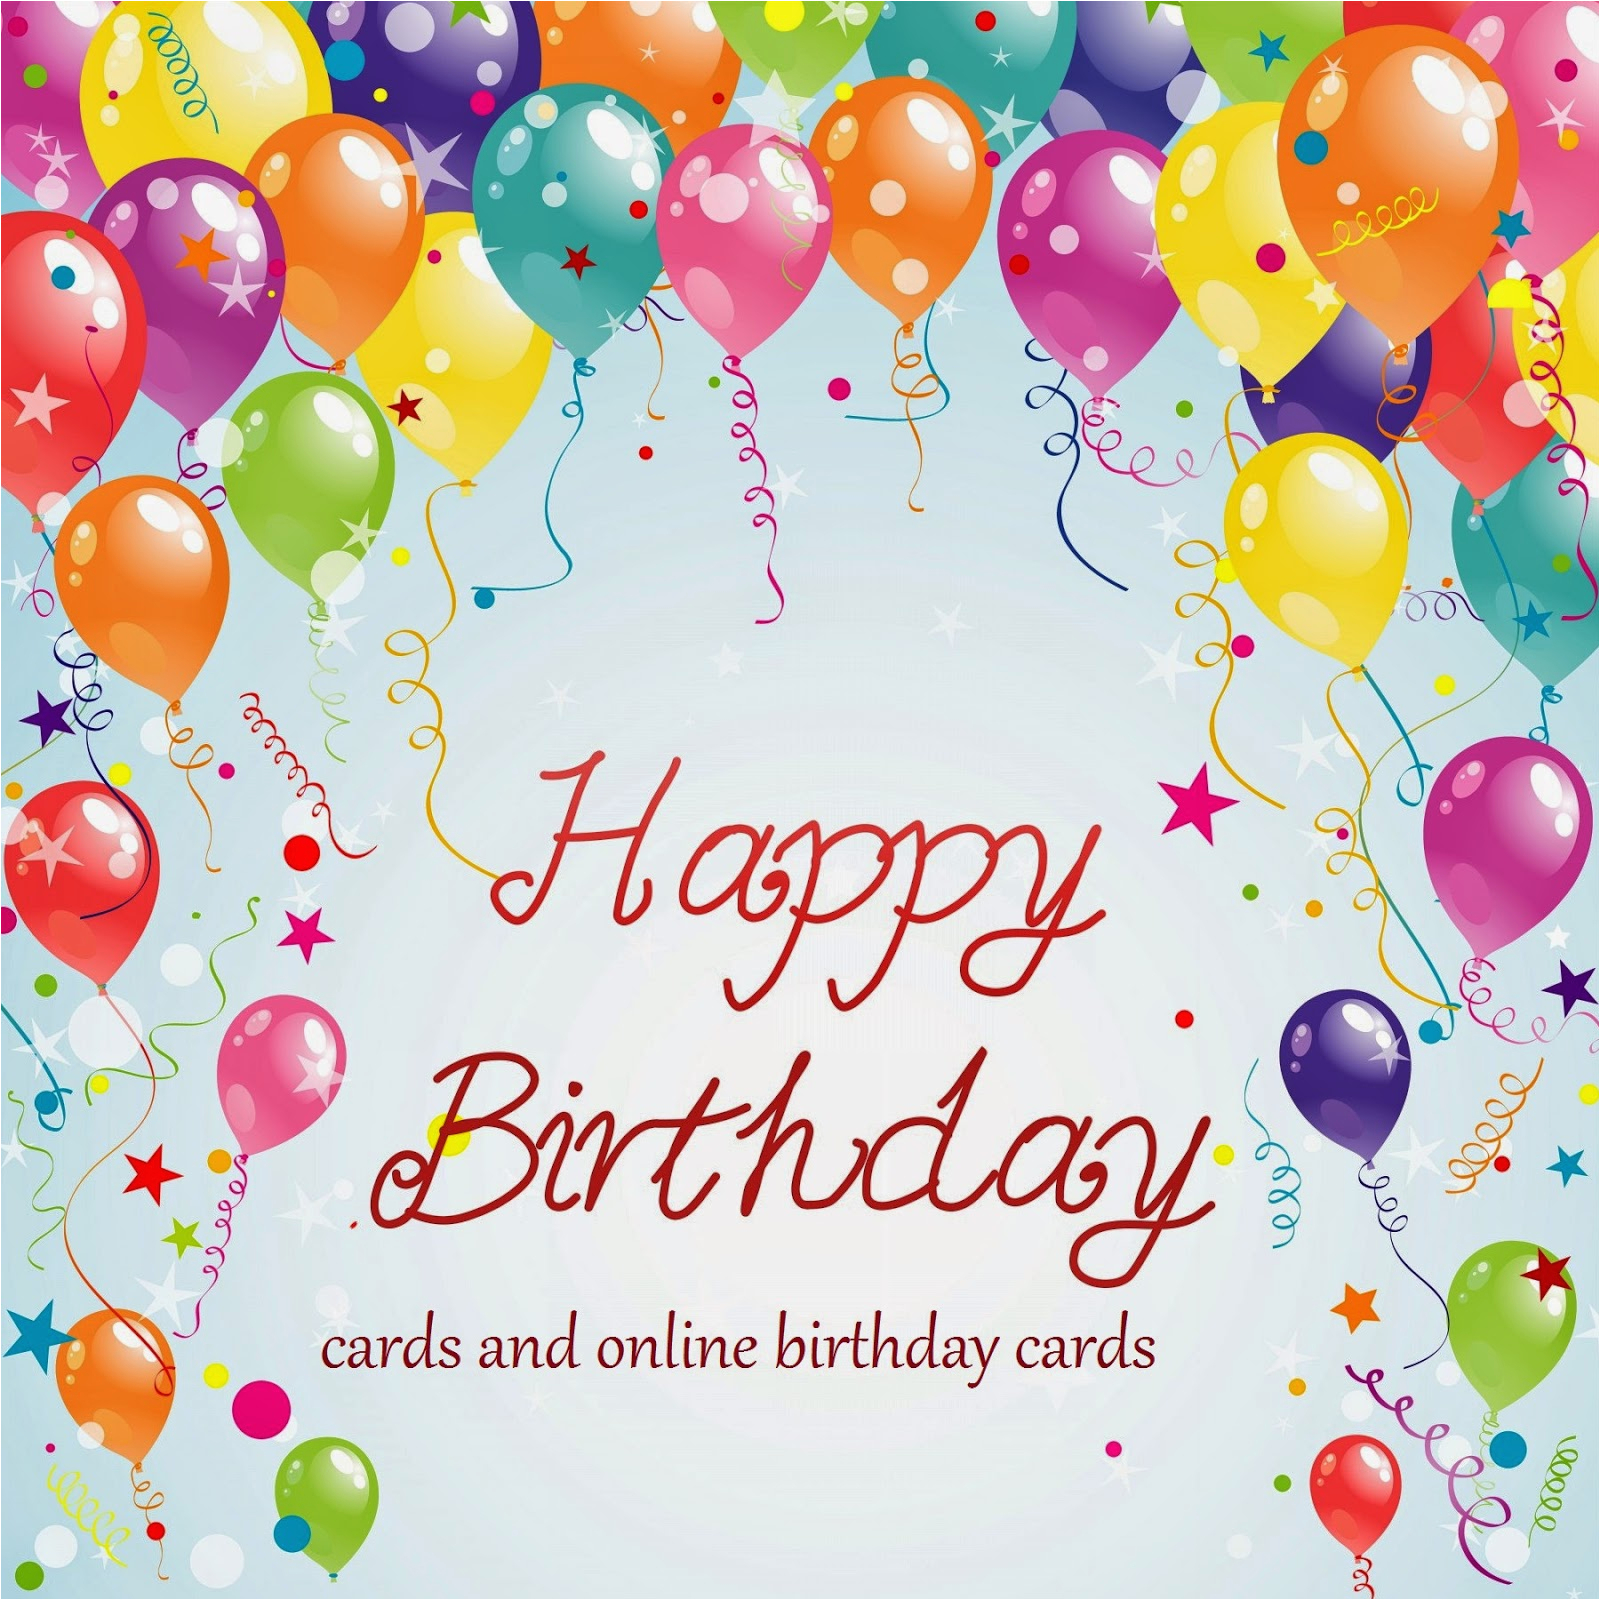 happy birthday cards online free regarding happy birthday